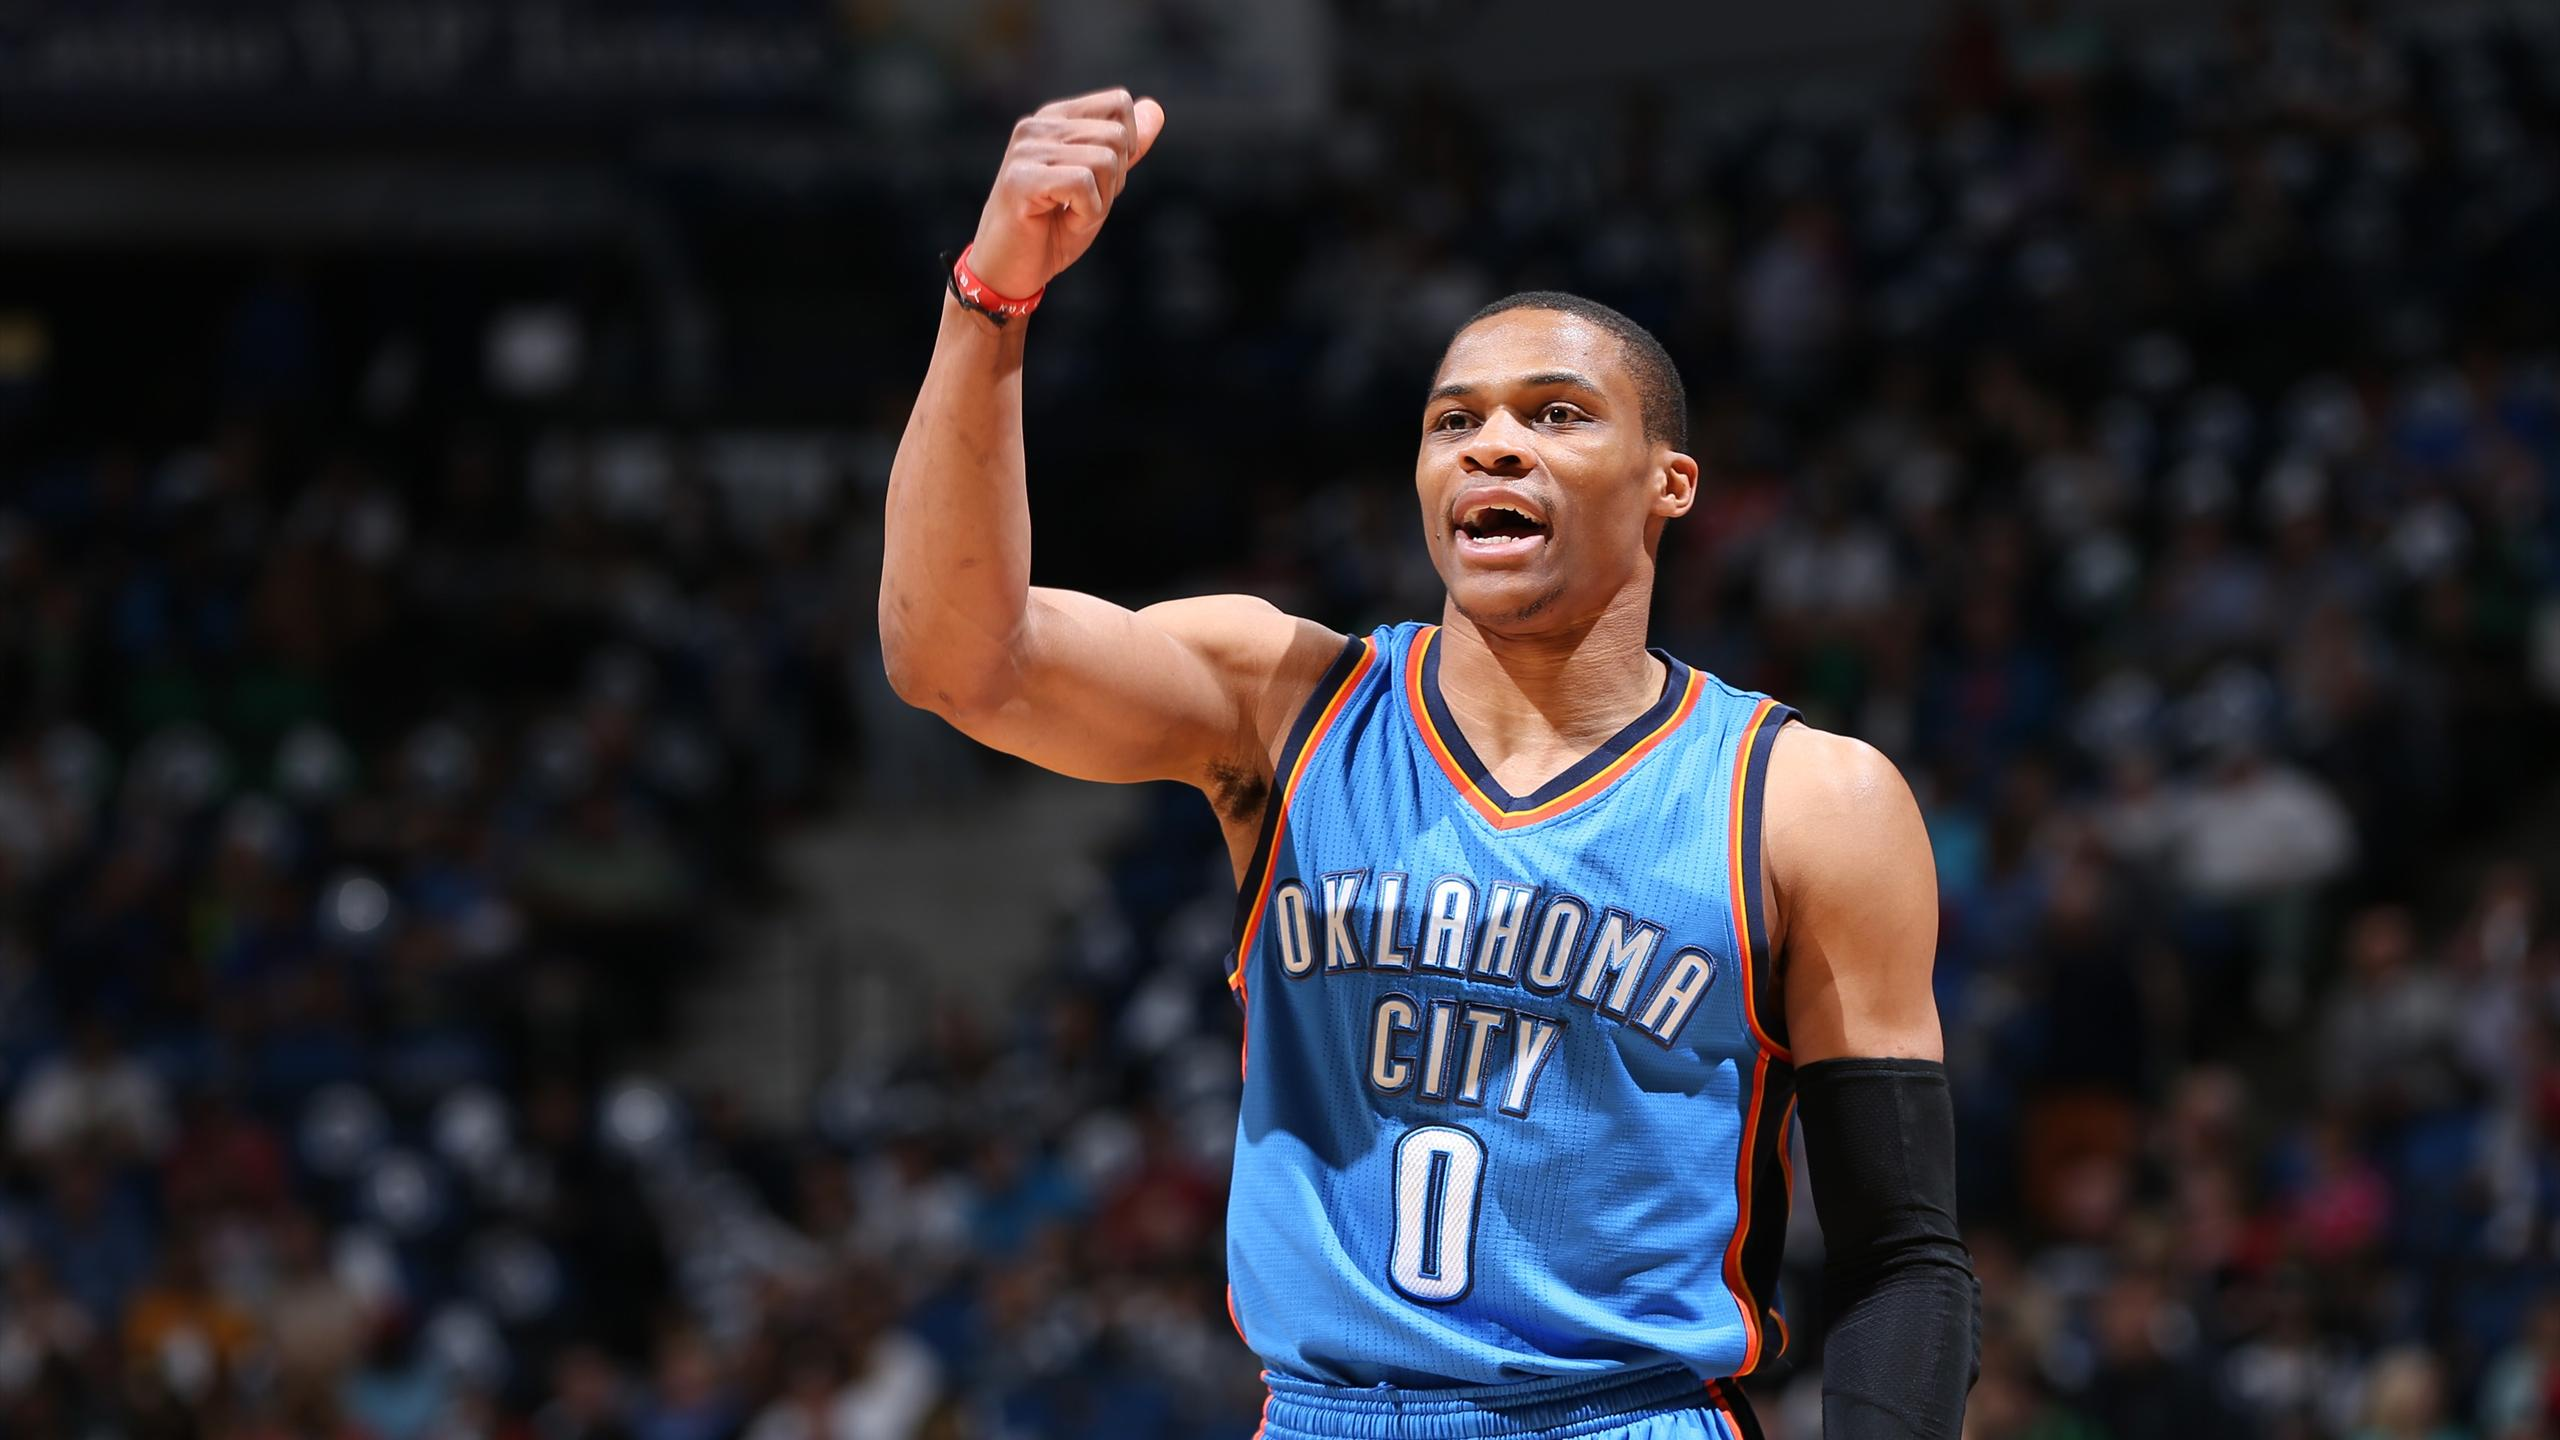 Russell Westbrook (Oklahoma City) NBA 2015